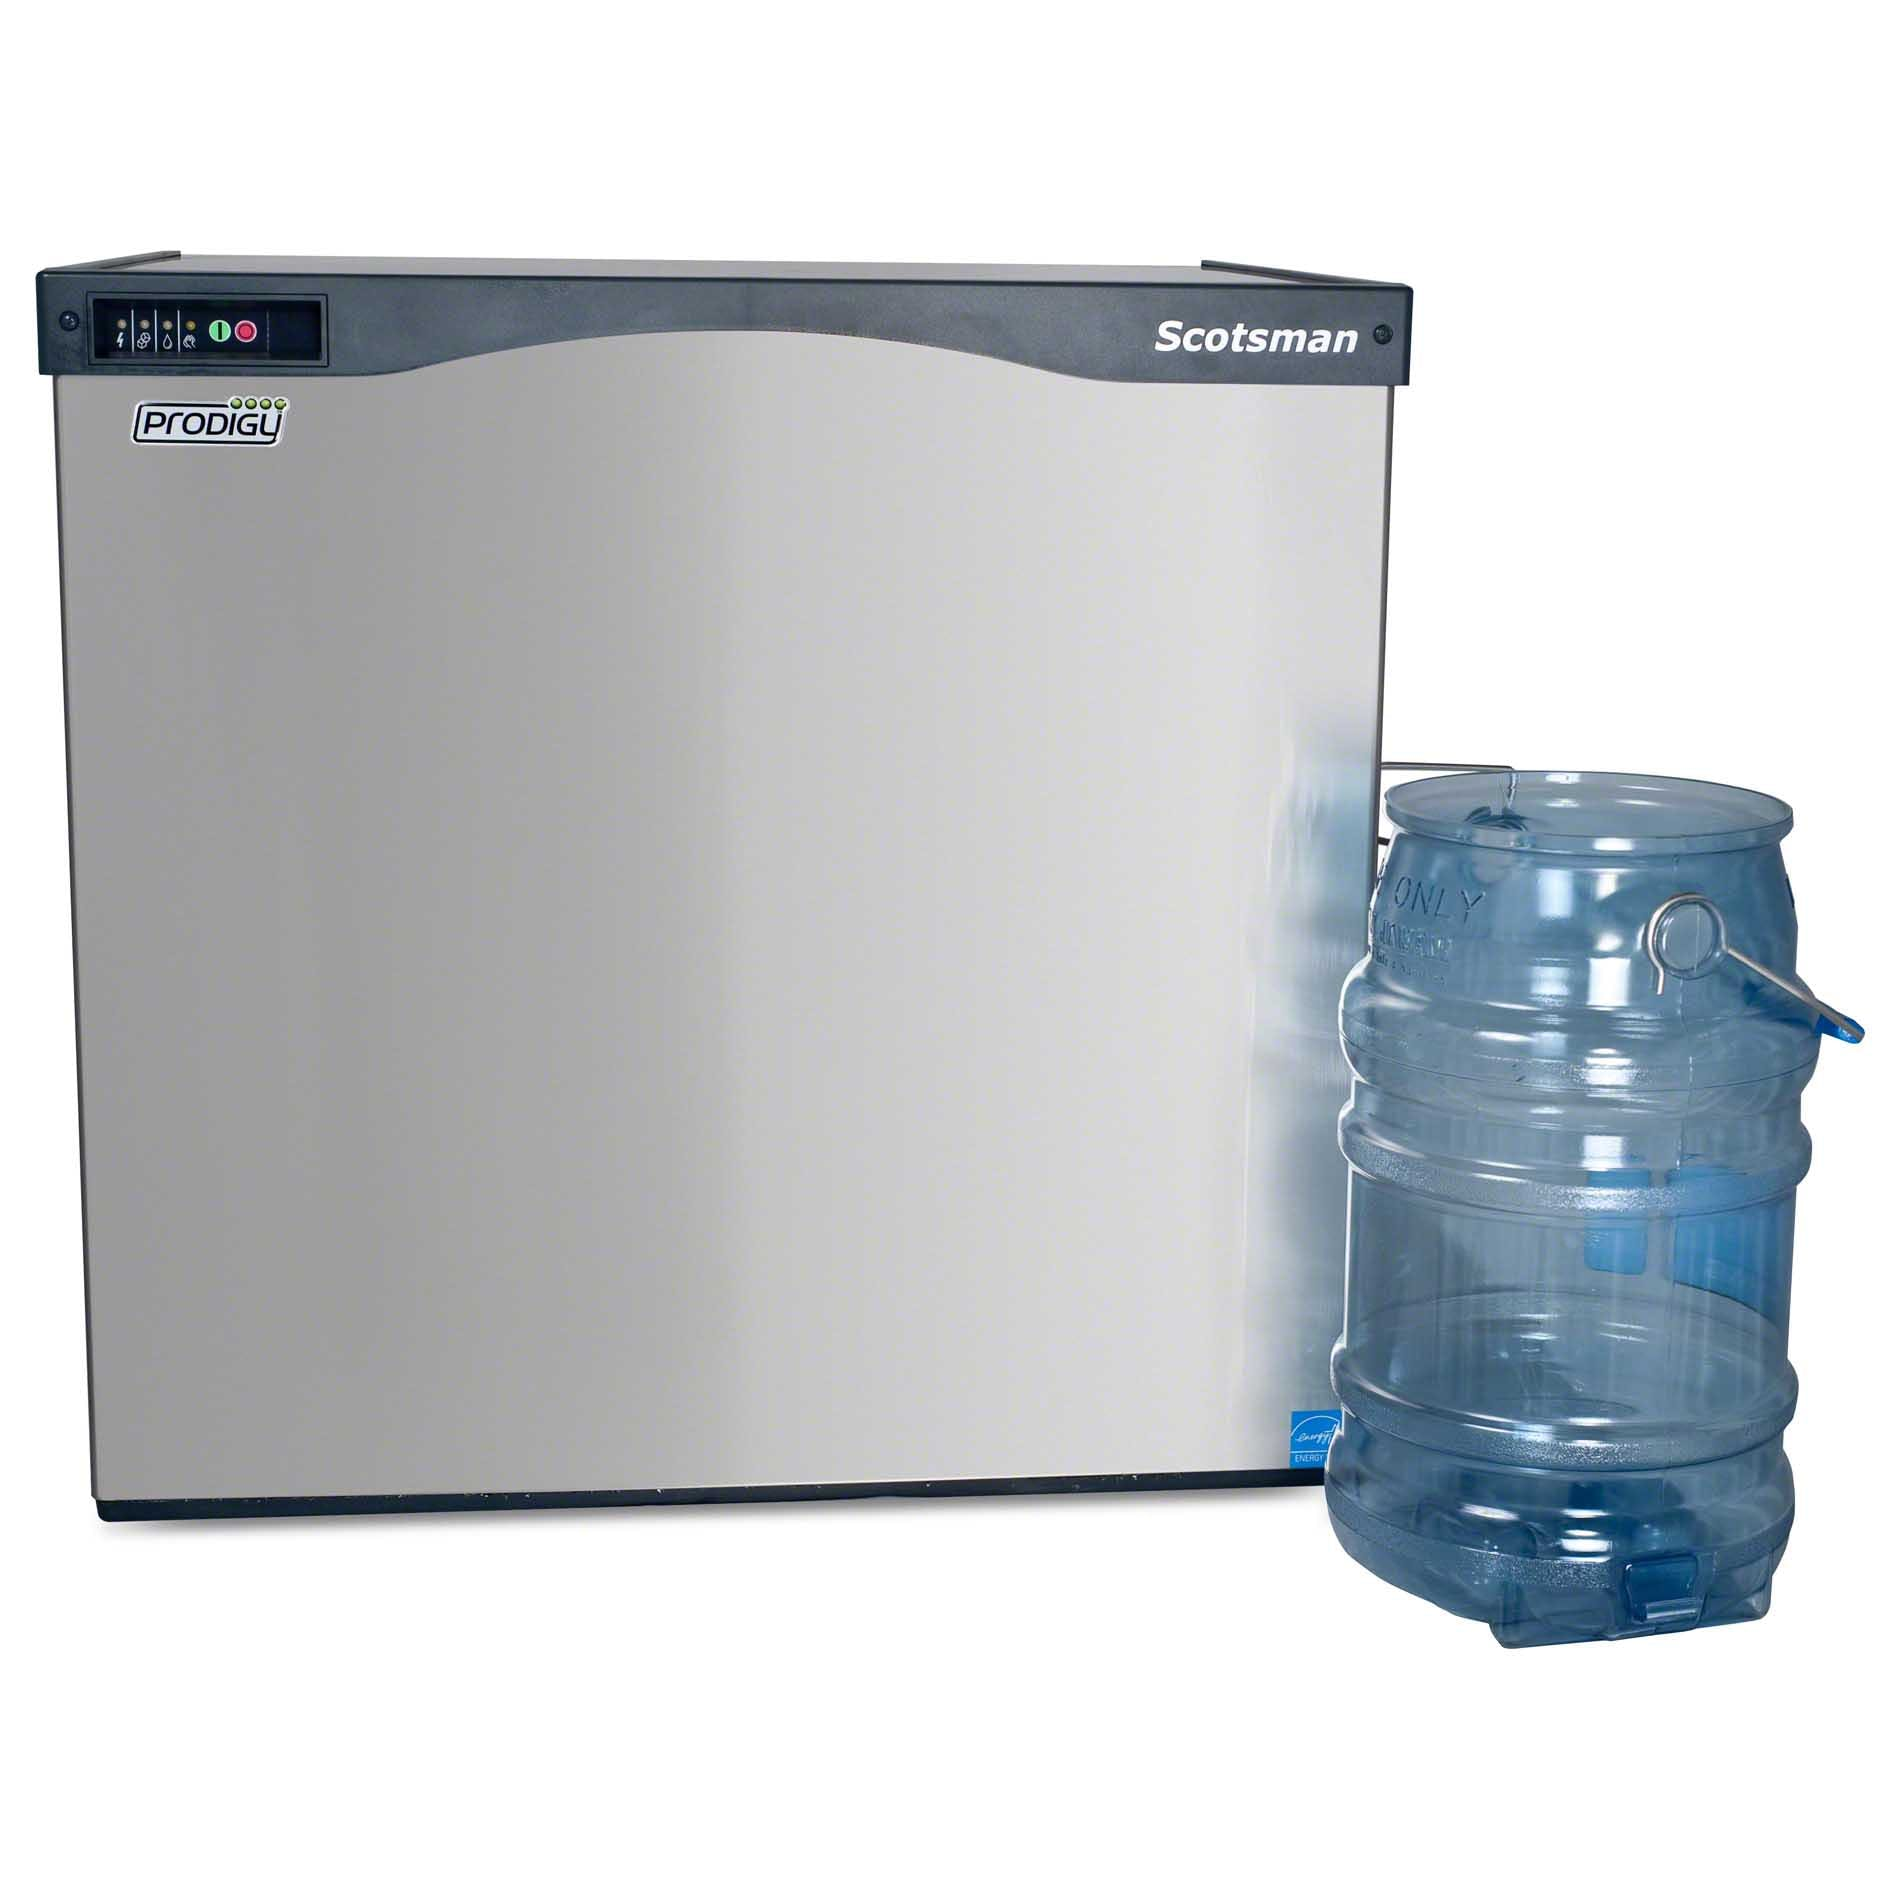 Scotsman - C0830MA-3A 905 lb Full Size Cube Ice Machine - Prodigy Series Ice machine sold by Food Service Warehouse